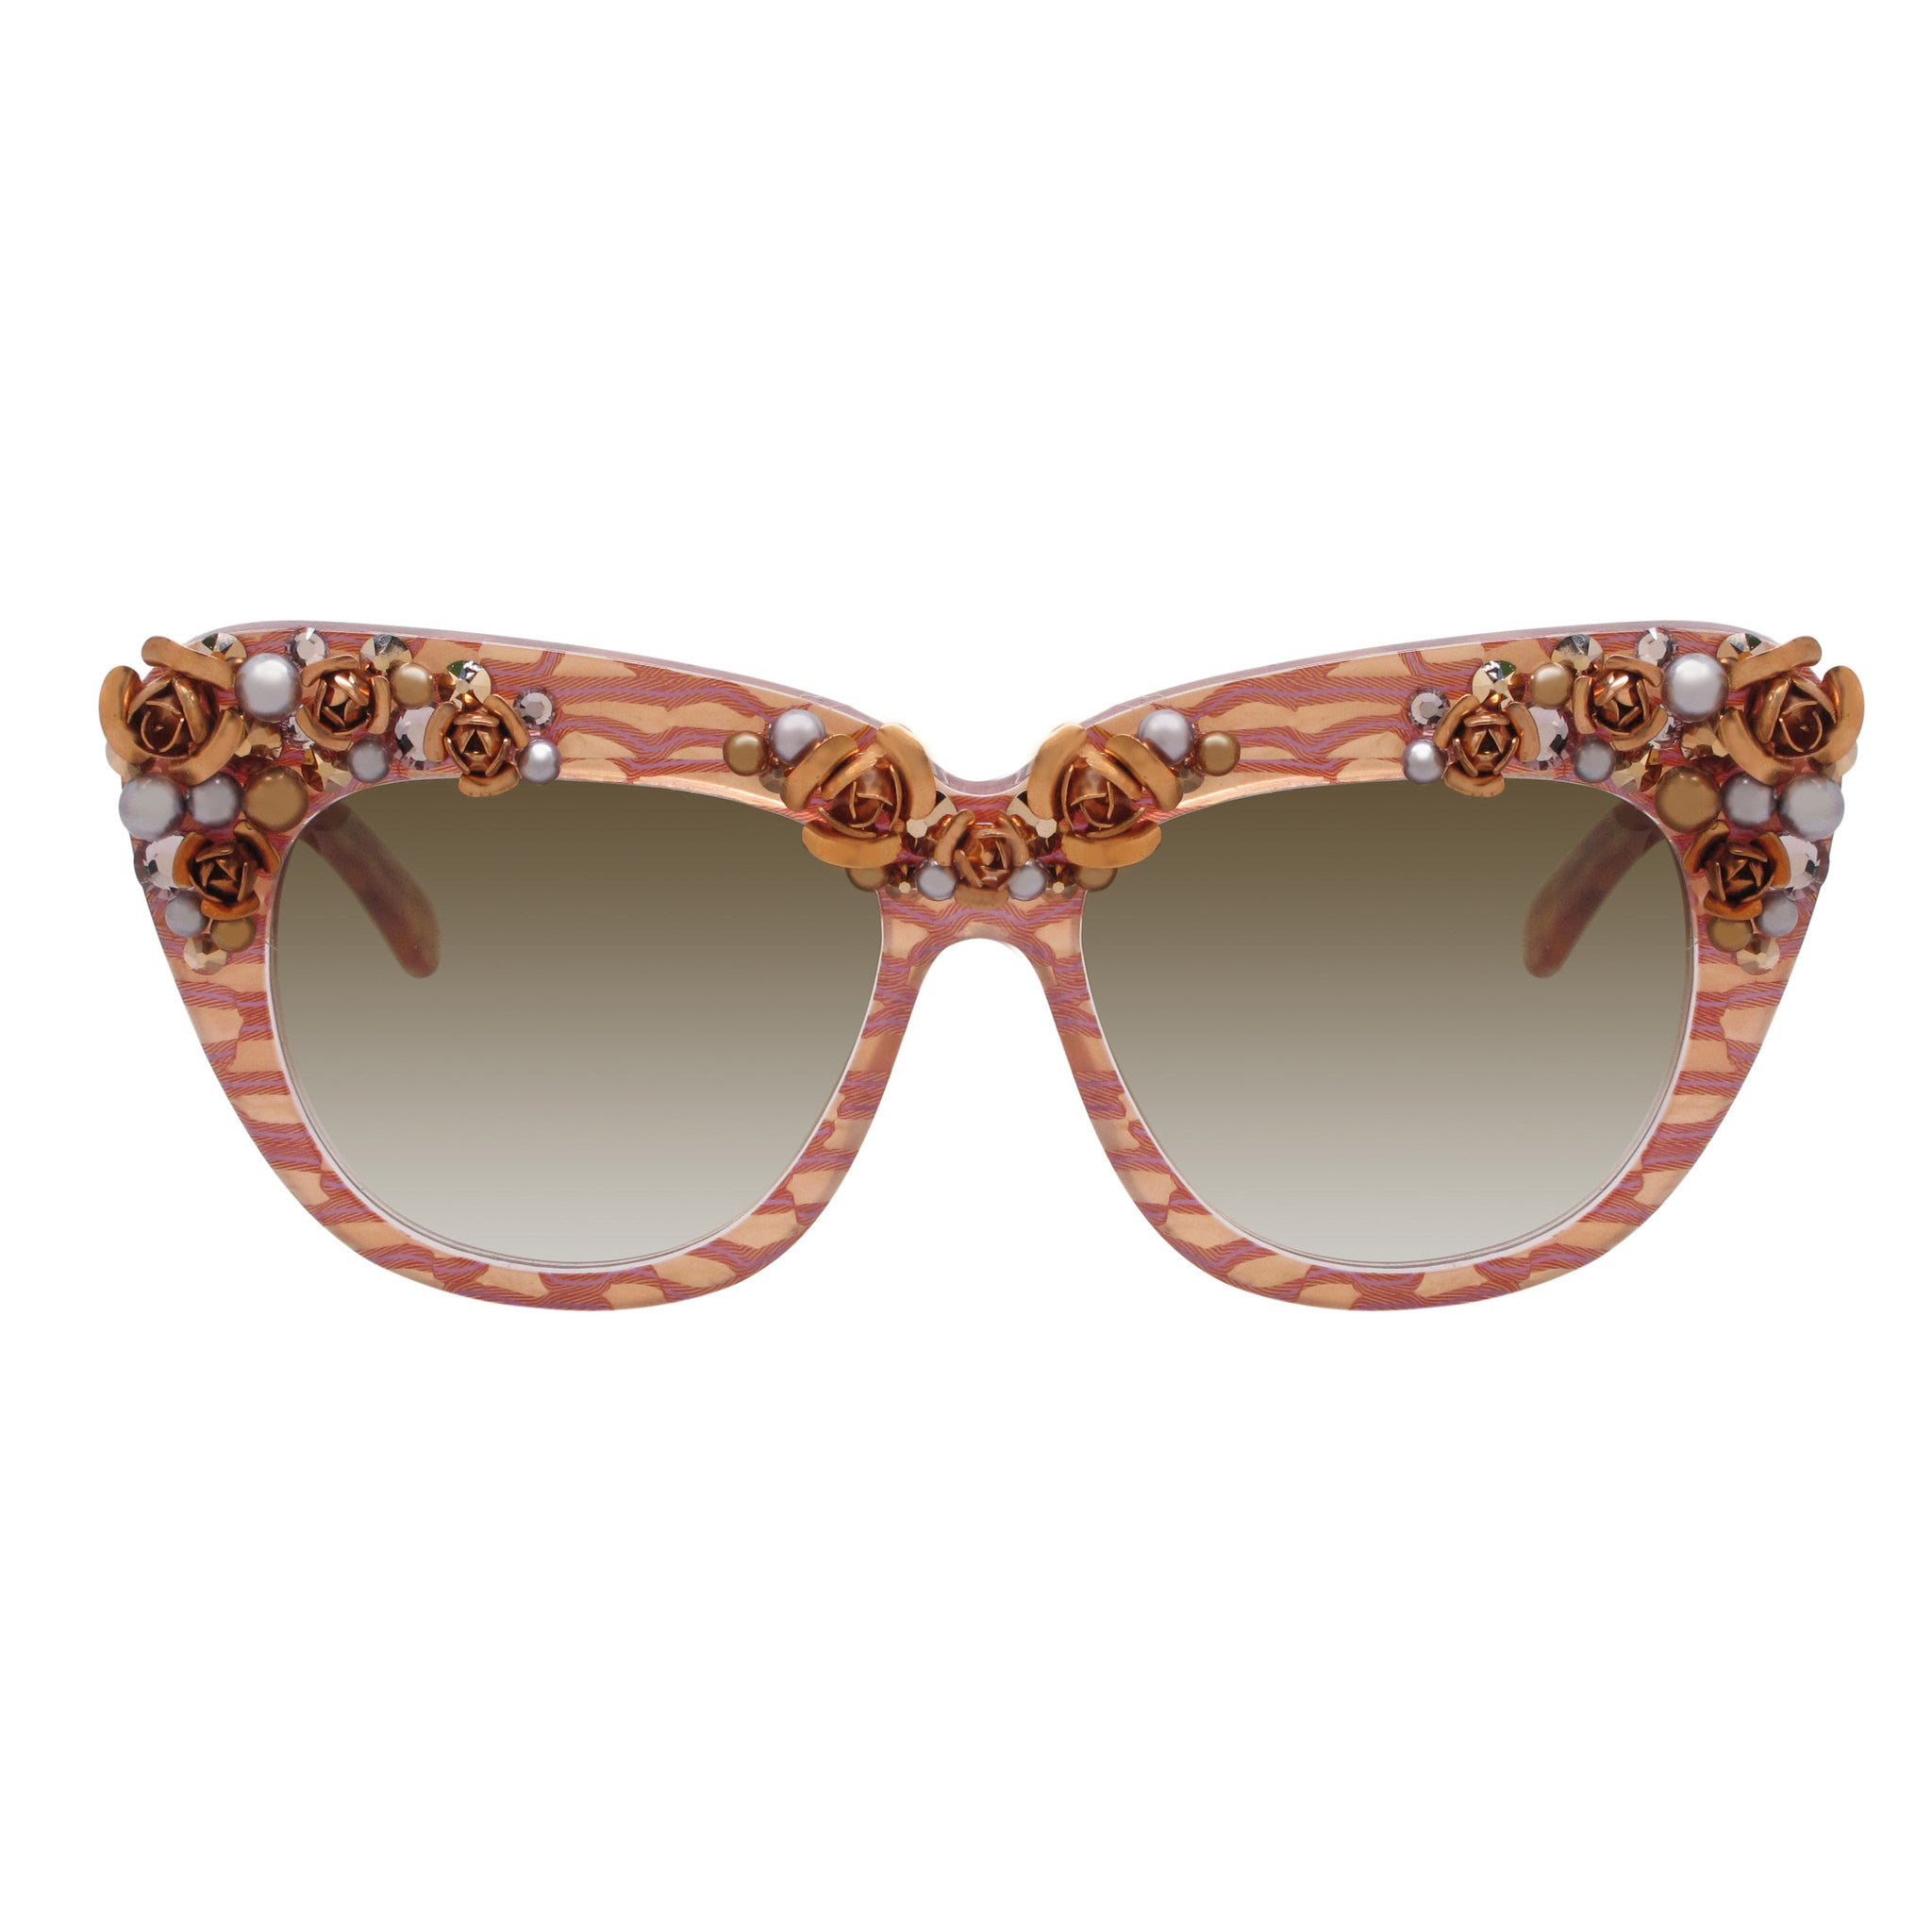 Billy floral accent square sunglasses